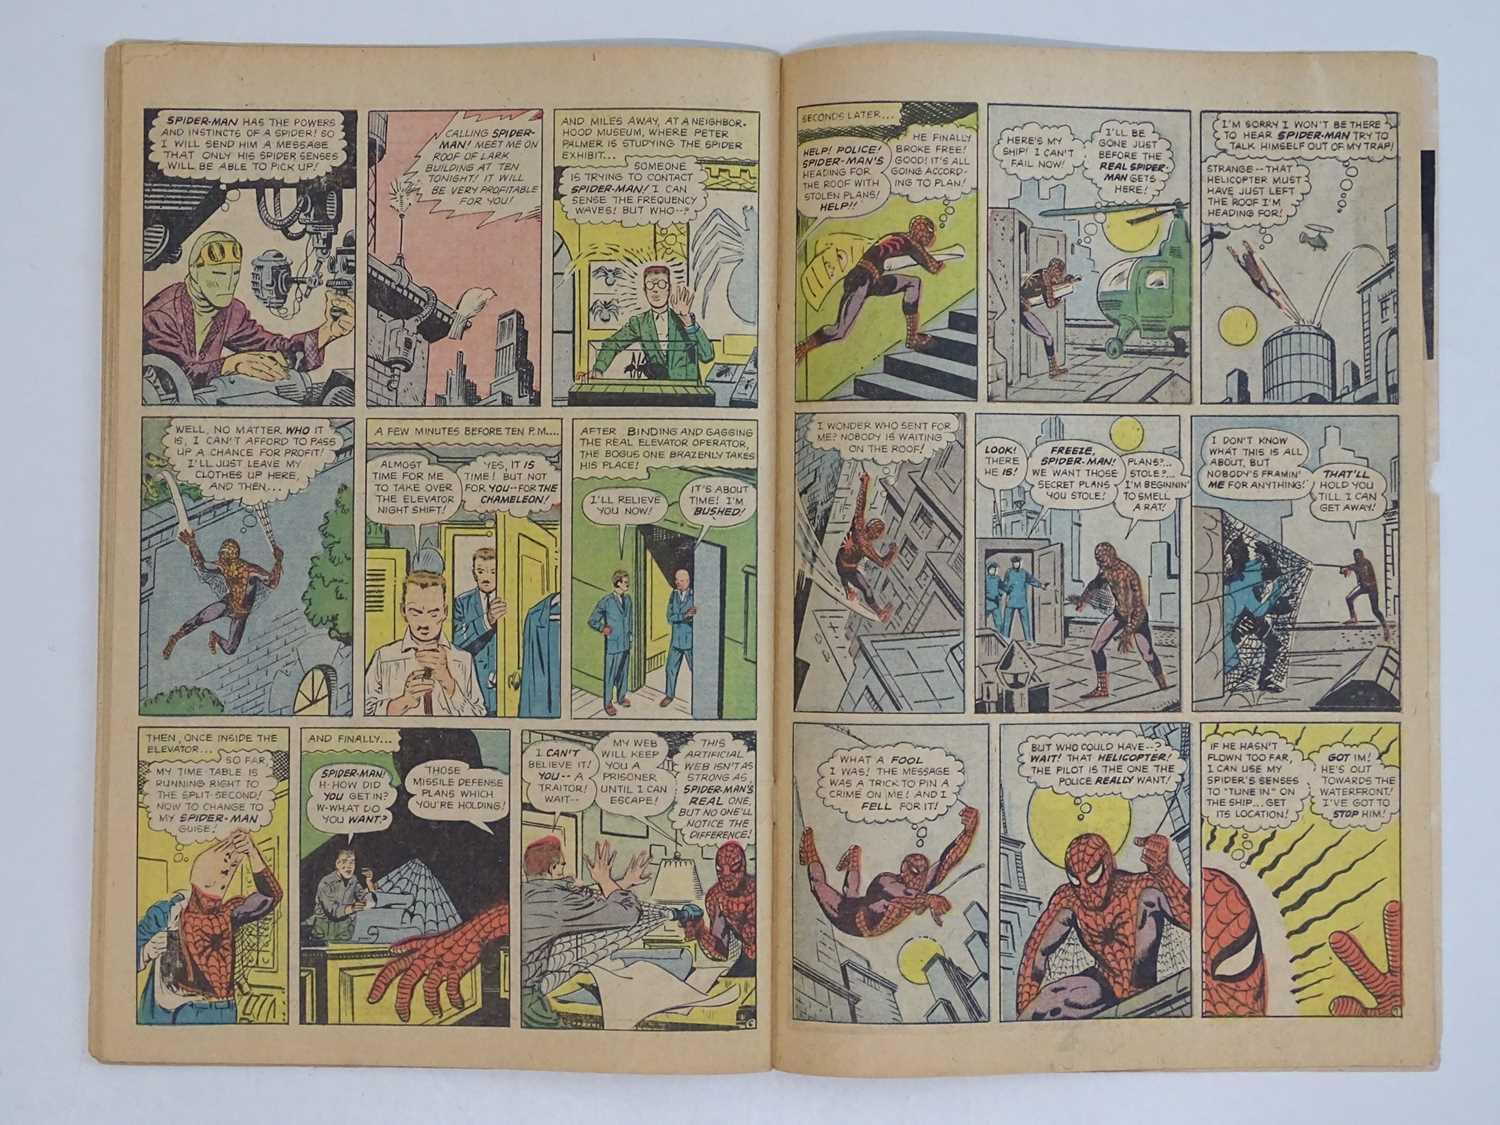 AMAZING SPIDER-MAN #1 - (1963 - MARVEL - UK Price Variant) - First appearance of Spider-Man un his - Image 24 of 27